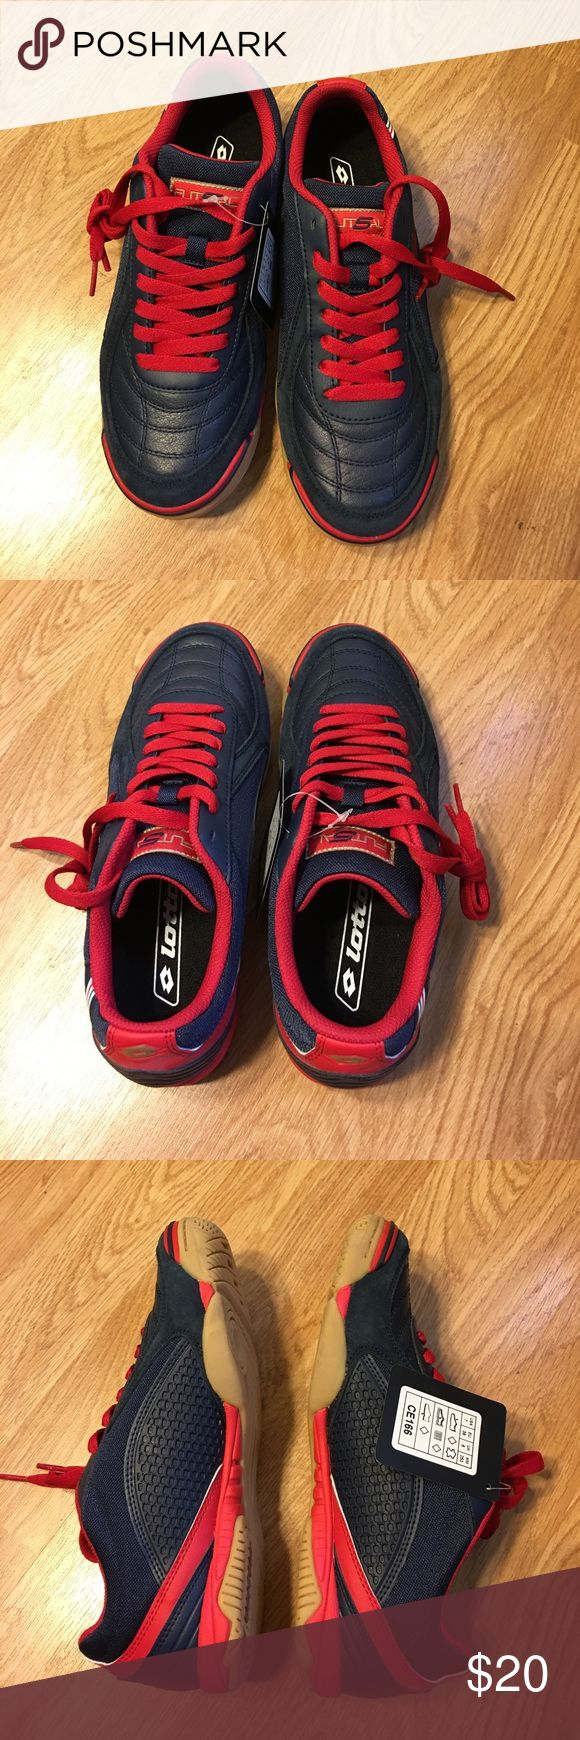 NWT Lotto soccer sneakers Brand new Lotto soccer sneakers Lotto Shoes Athletic Shoes